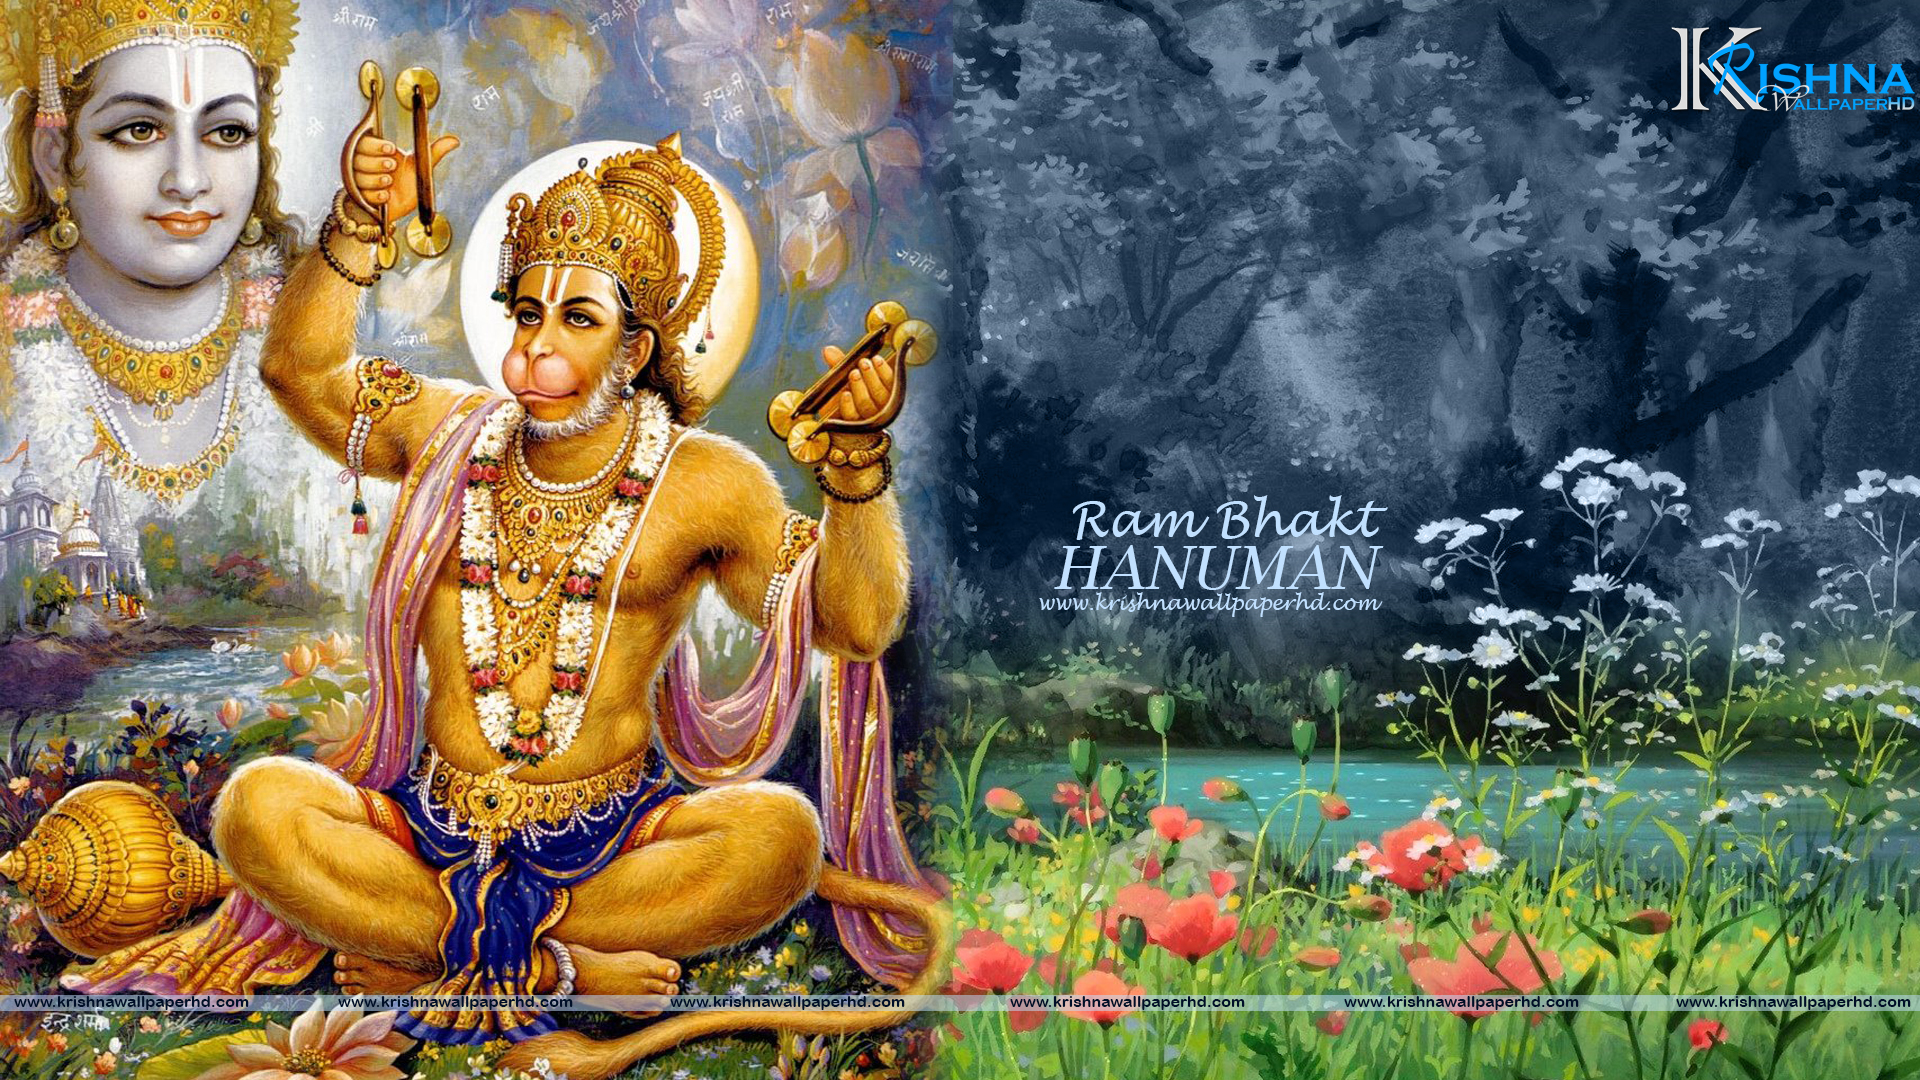 Full HD Size Image of Lord Hanuman Free Download